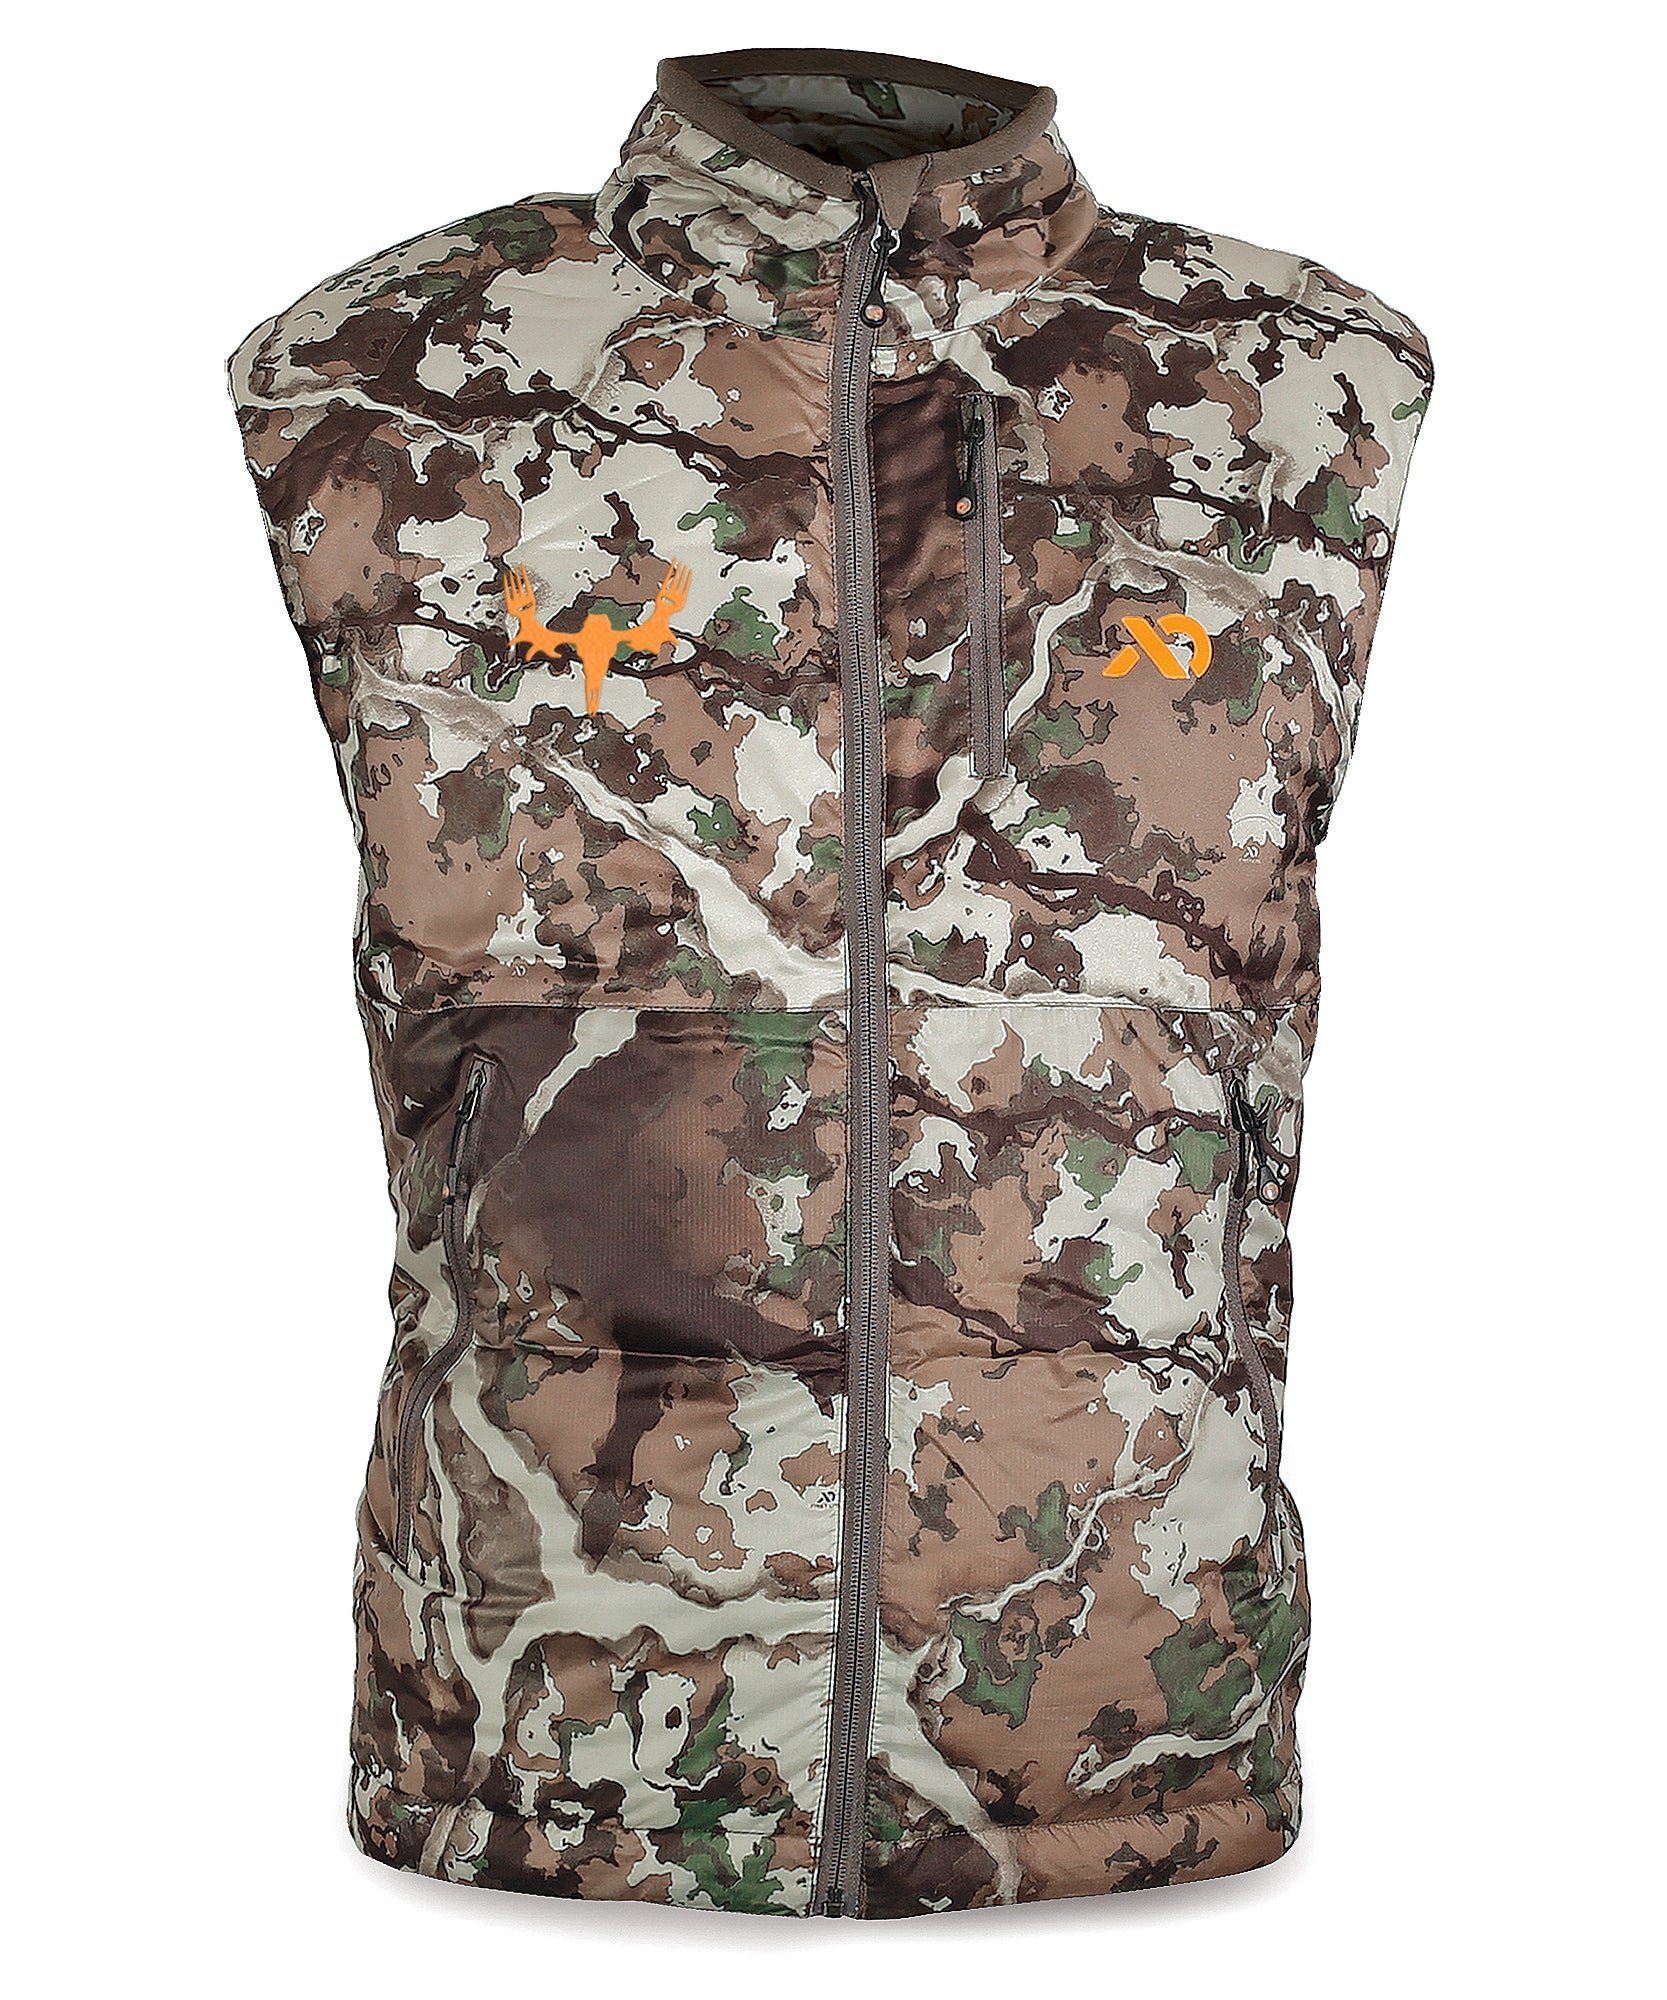 Men's Uncompahgre Puffy Vest with MeatEater logo